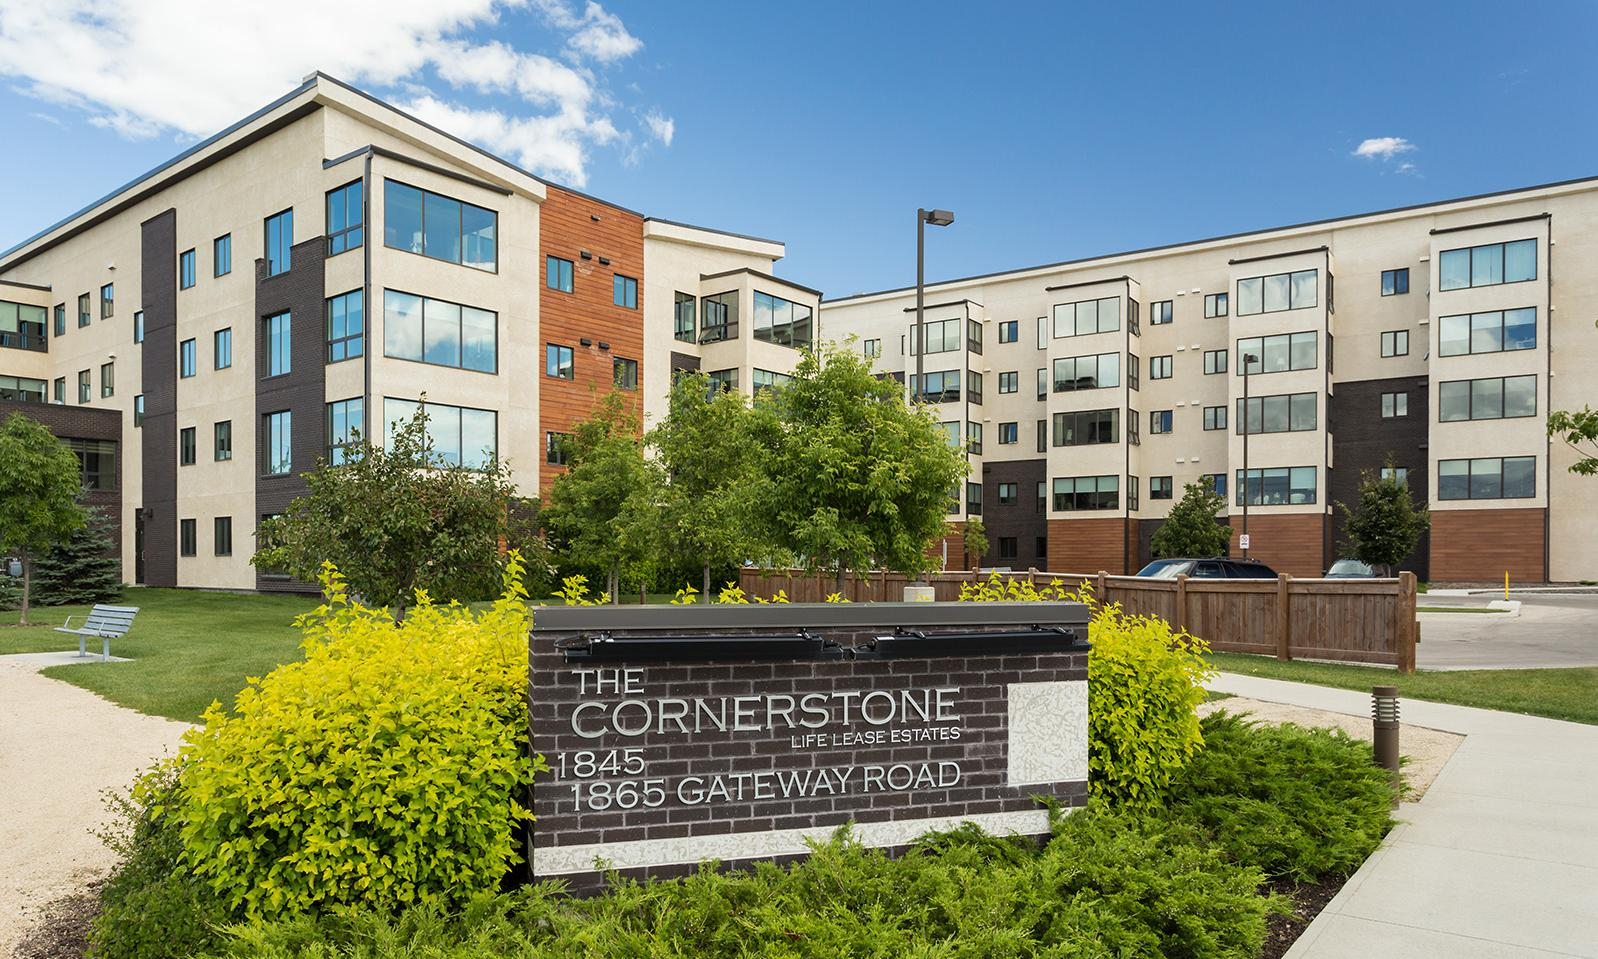 Cornerstone Life Lease Estates. Location plaque in foreground; the two Cornerstone buildings in the background.